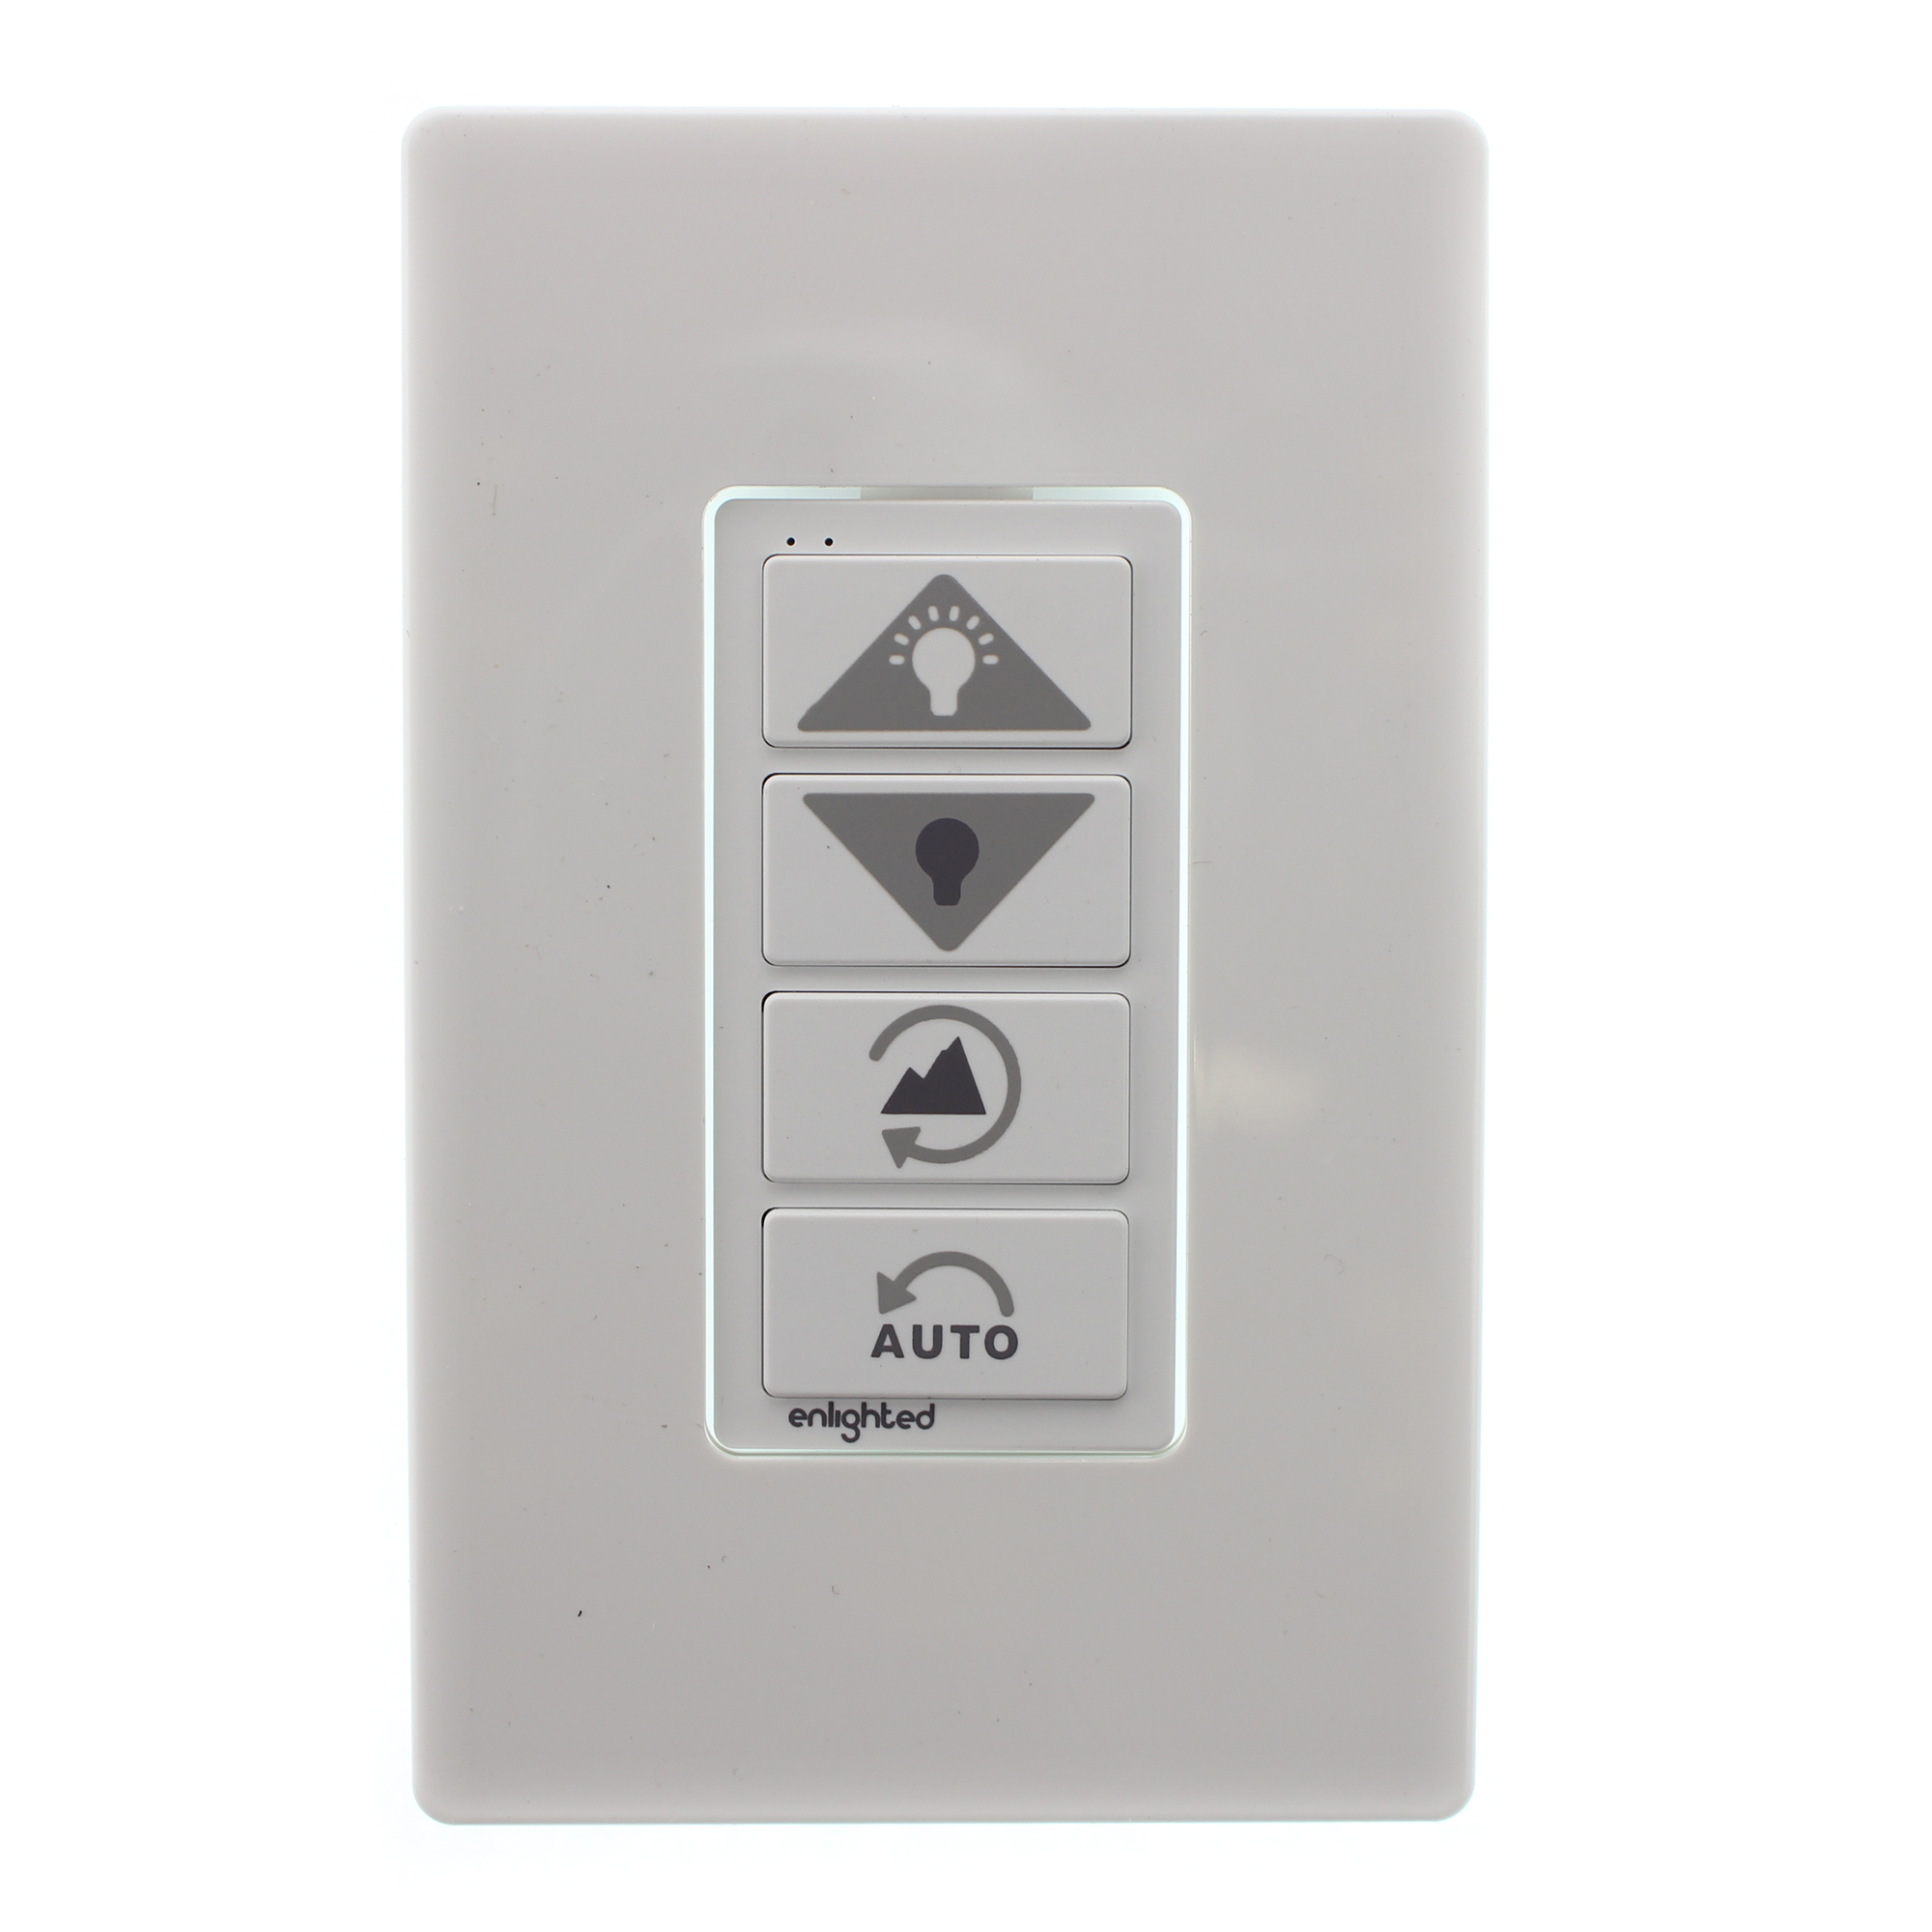 ENLIGHTED LIGHTING WS-2-00 WIRELESS LIGHTING CONTROL SWITCH, 4 ...